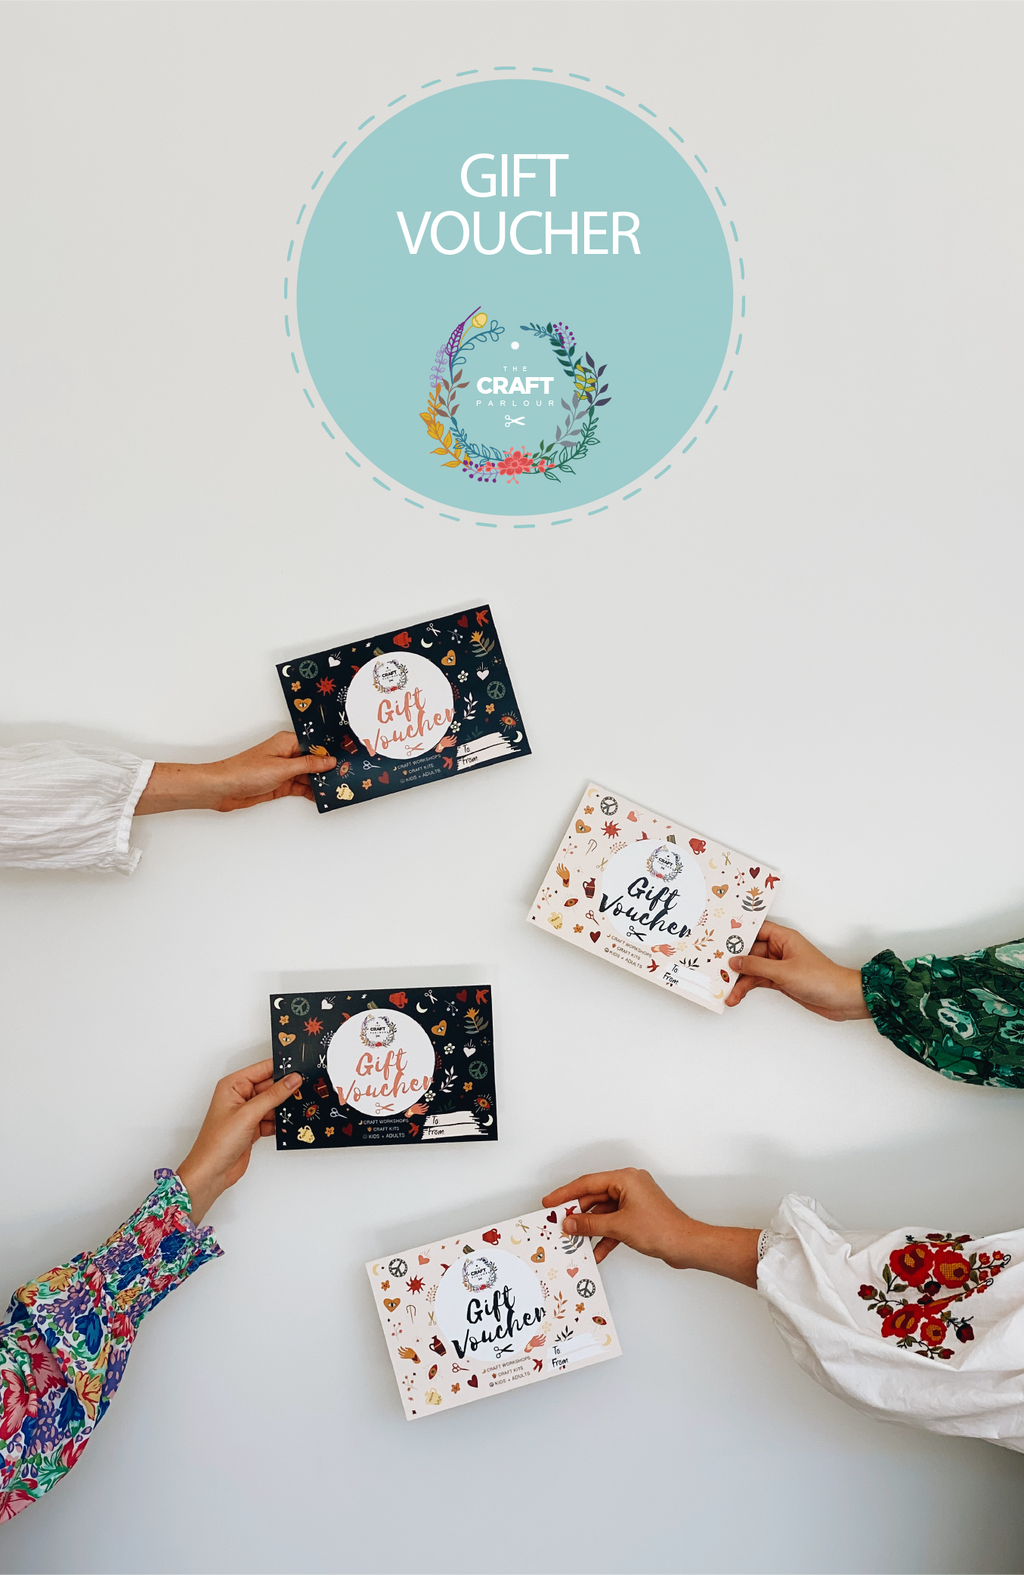 The Craft Parlour creative workshop gift vouchers